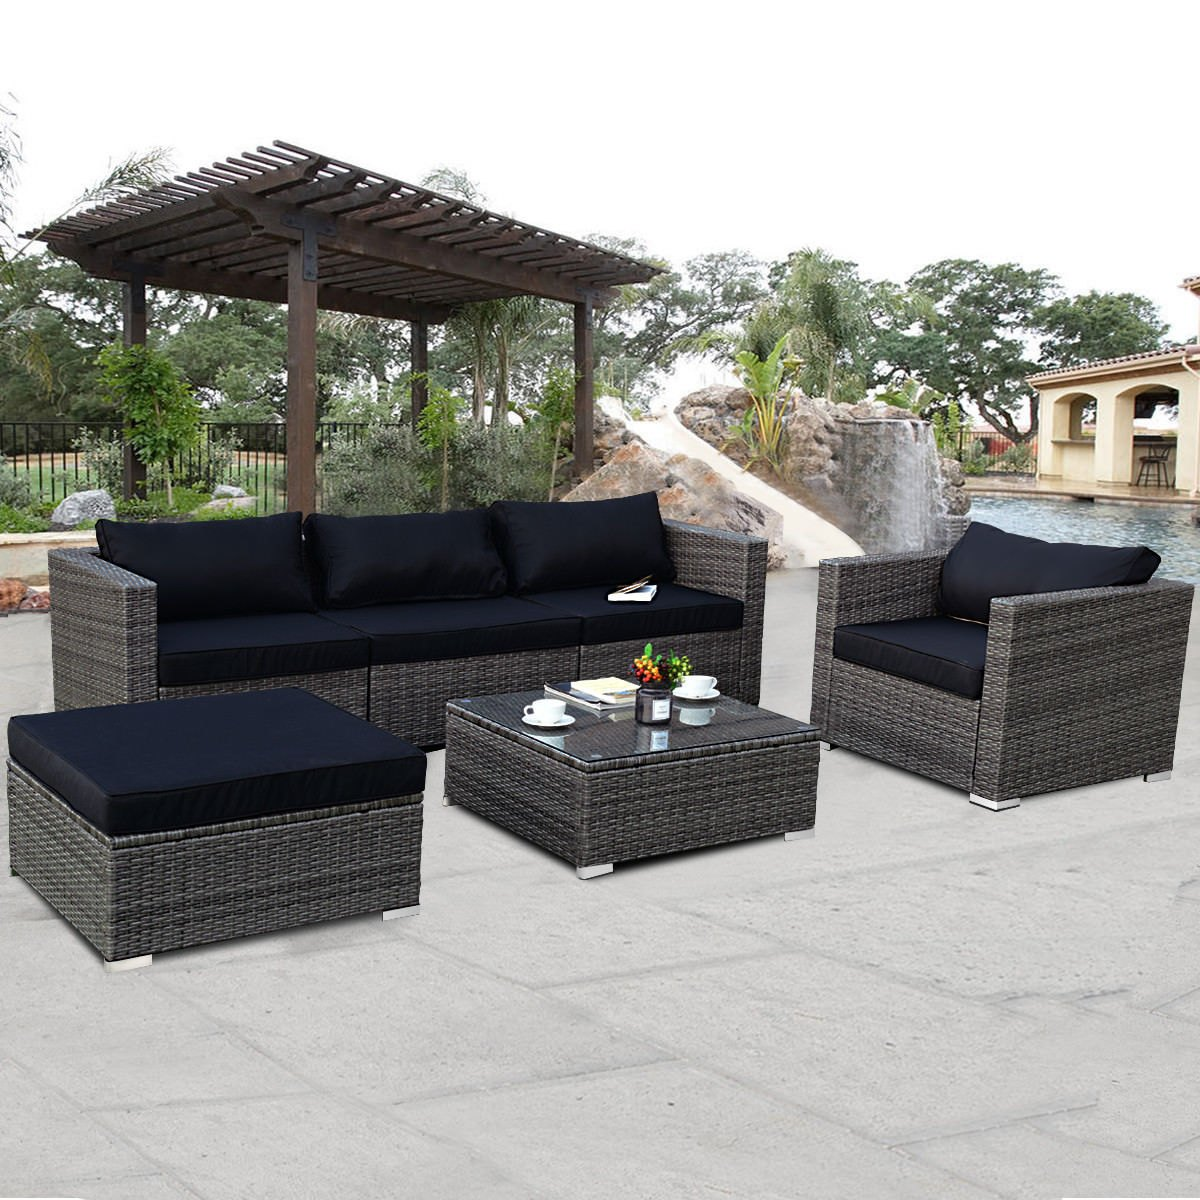 Costway 6-piece Rattan Wicker Patio Furniture Set Sectional Sofa Couch Yard  W/Black